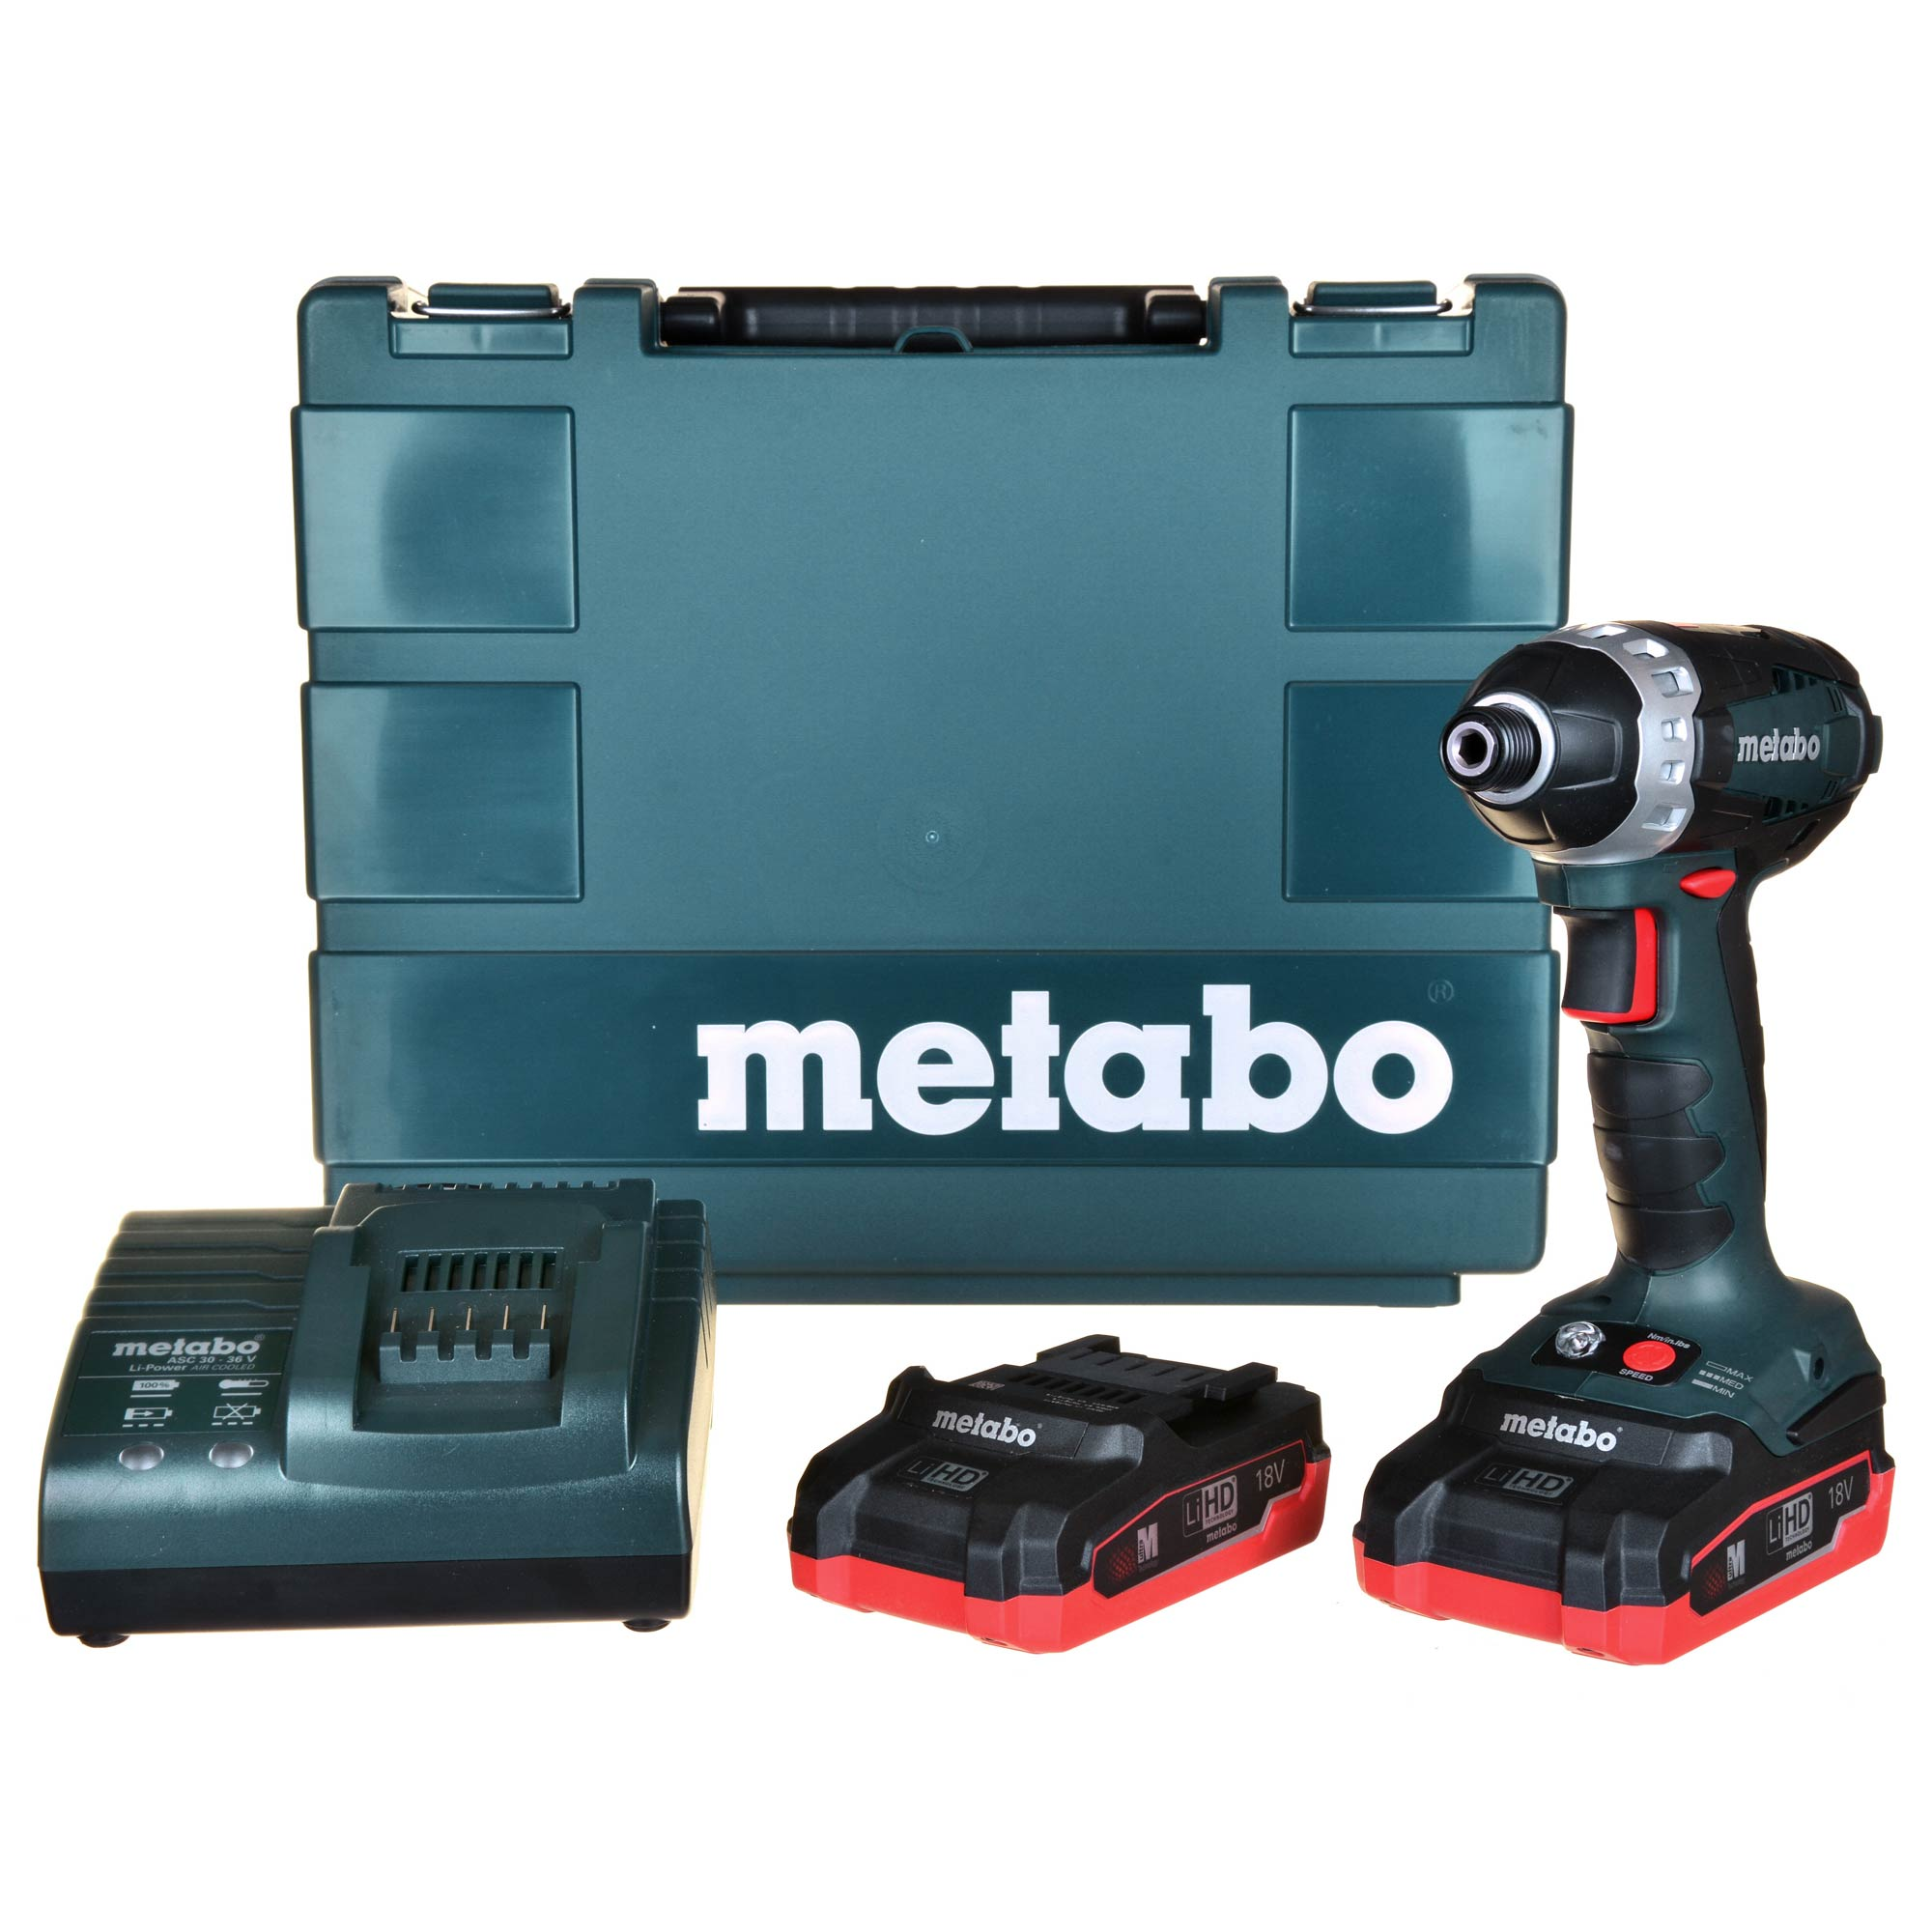 metabo ssd 18 ltx 200 metabo 18v lihd impact driver. Black Bedroom Furniture Sets. Home Design Ideas